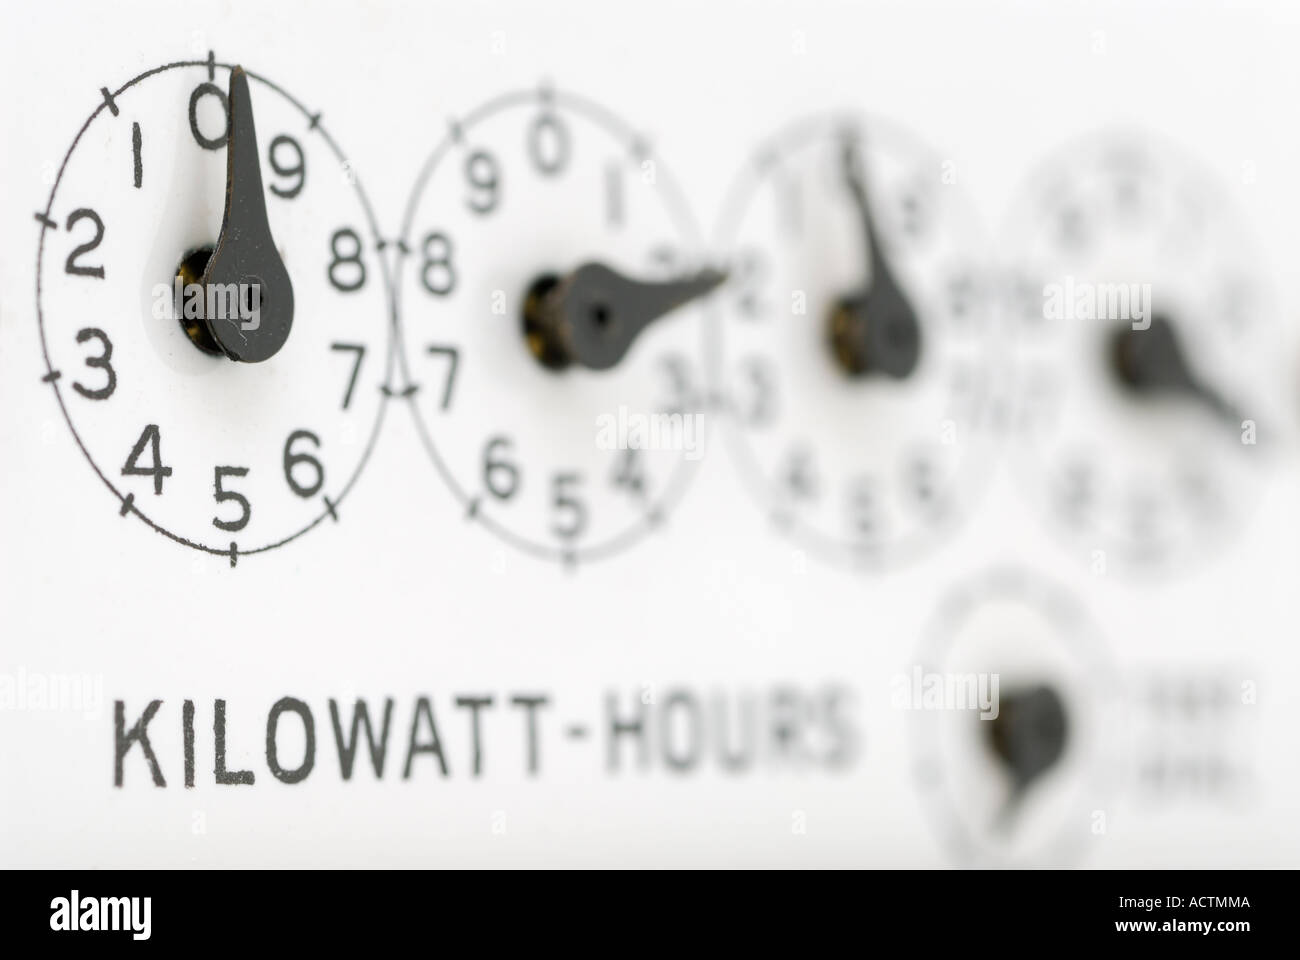 Close up of dials showing kilowatt hours on an electric hydro meter - Stock Image